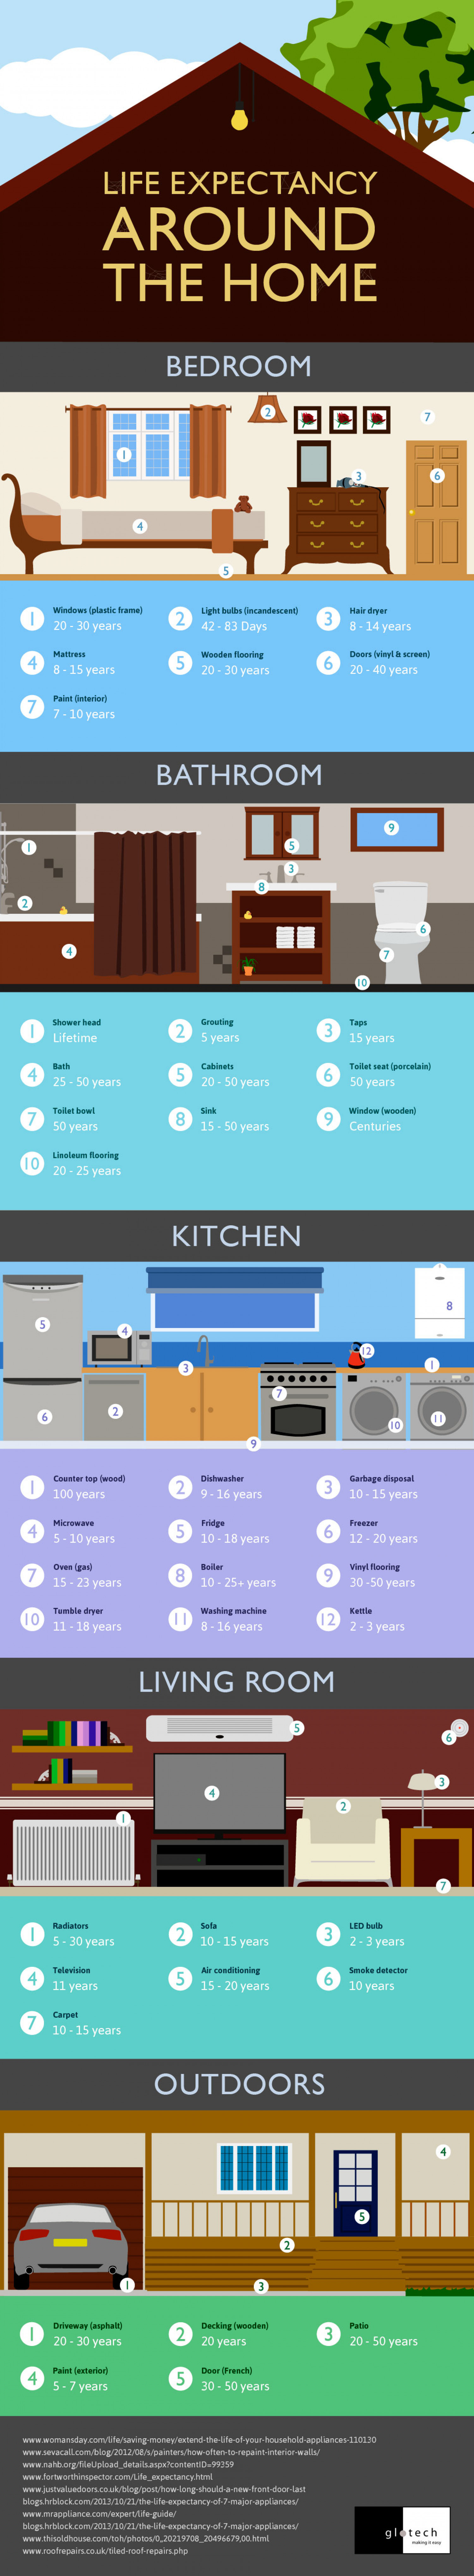 Life Expectancy Around The Home Infographic